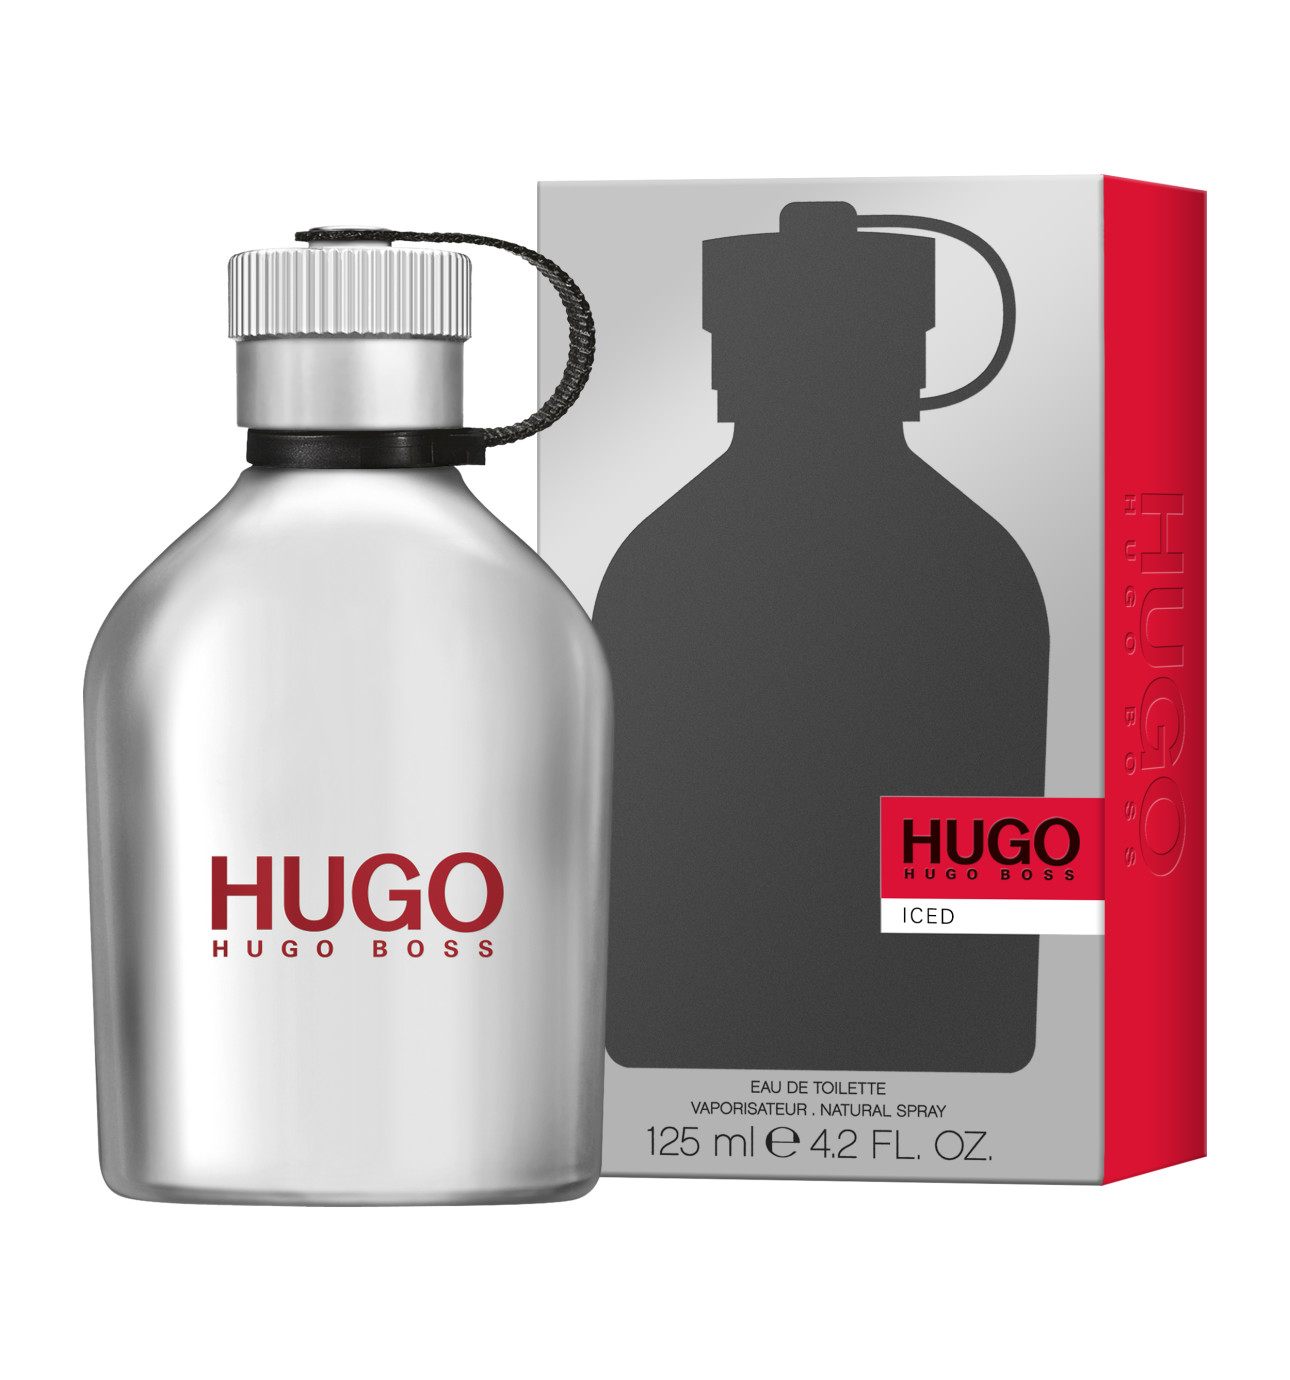 HUGO ICED (125ml)